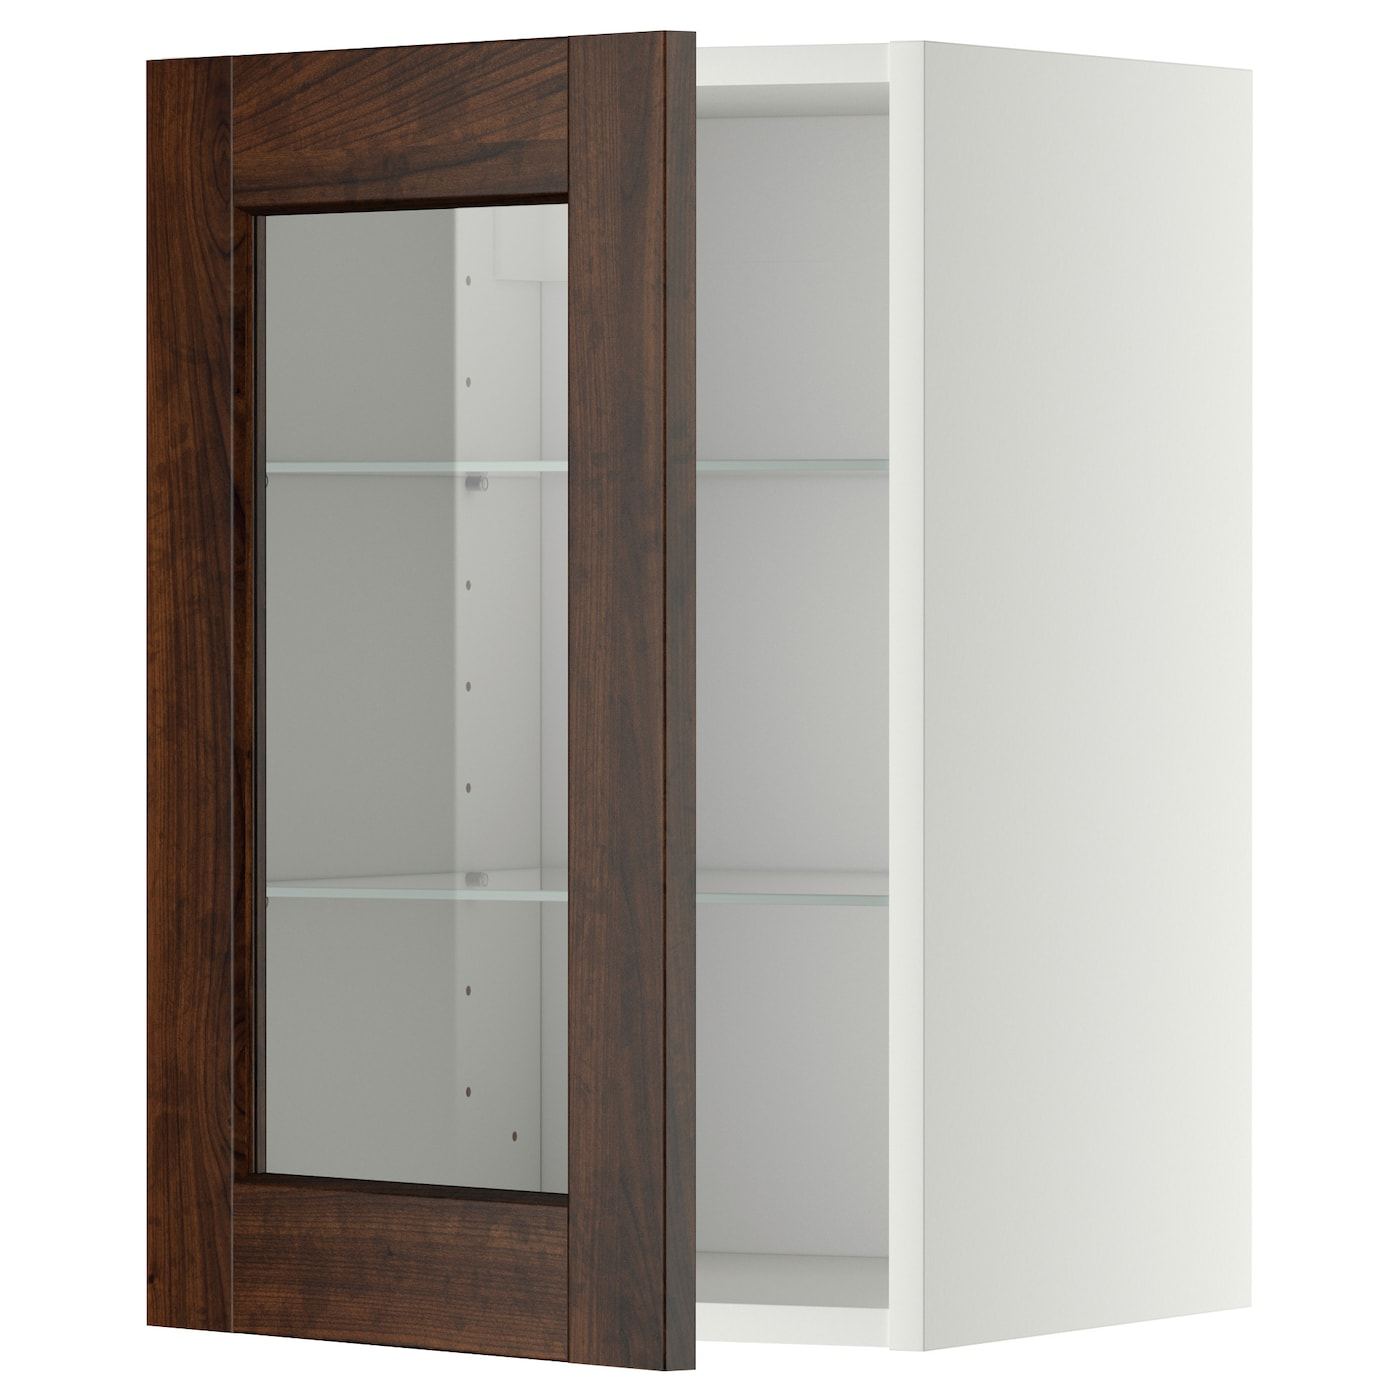 Metod Wall Cabinet W Shelves Glass Door White Edserum